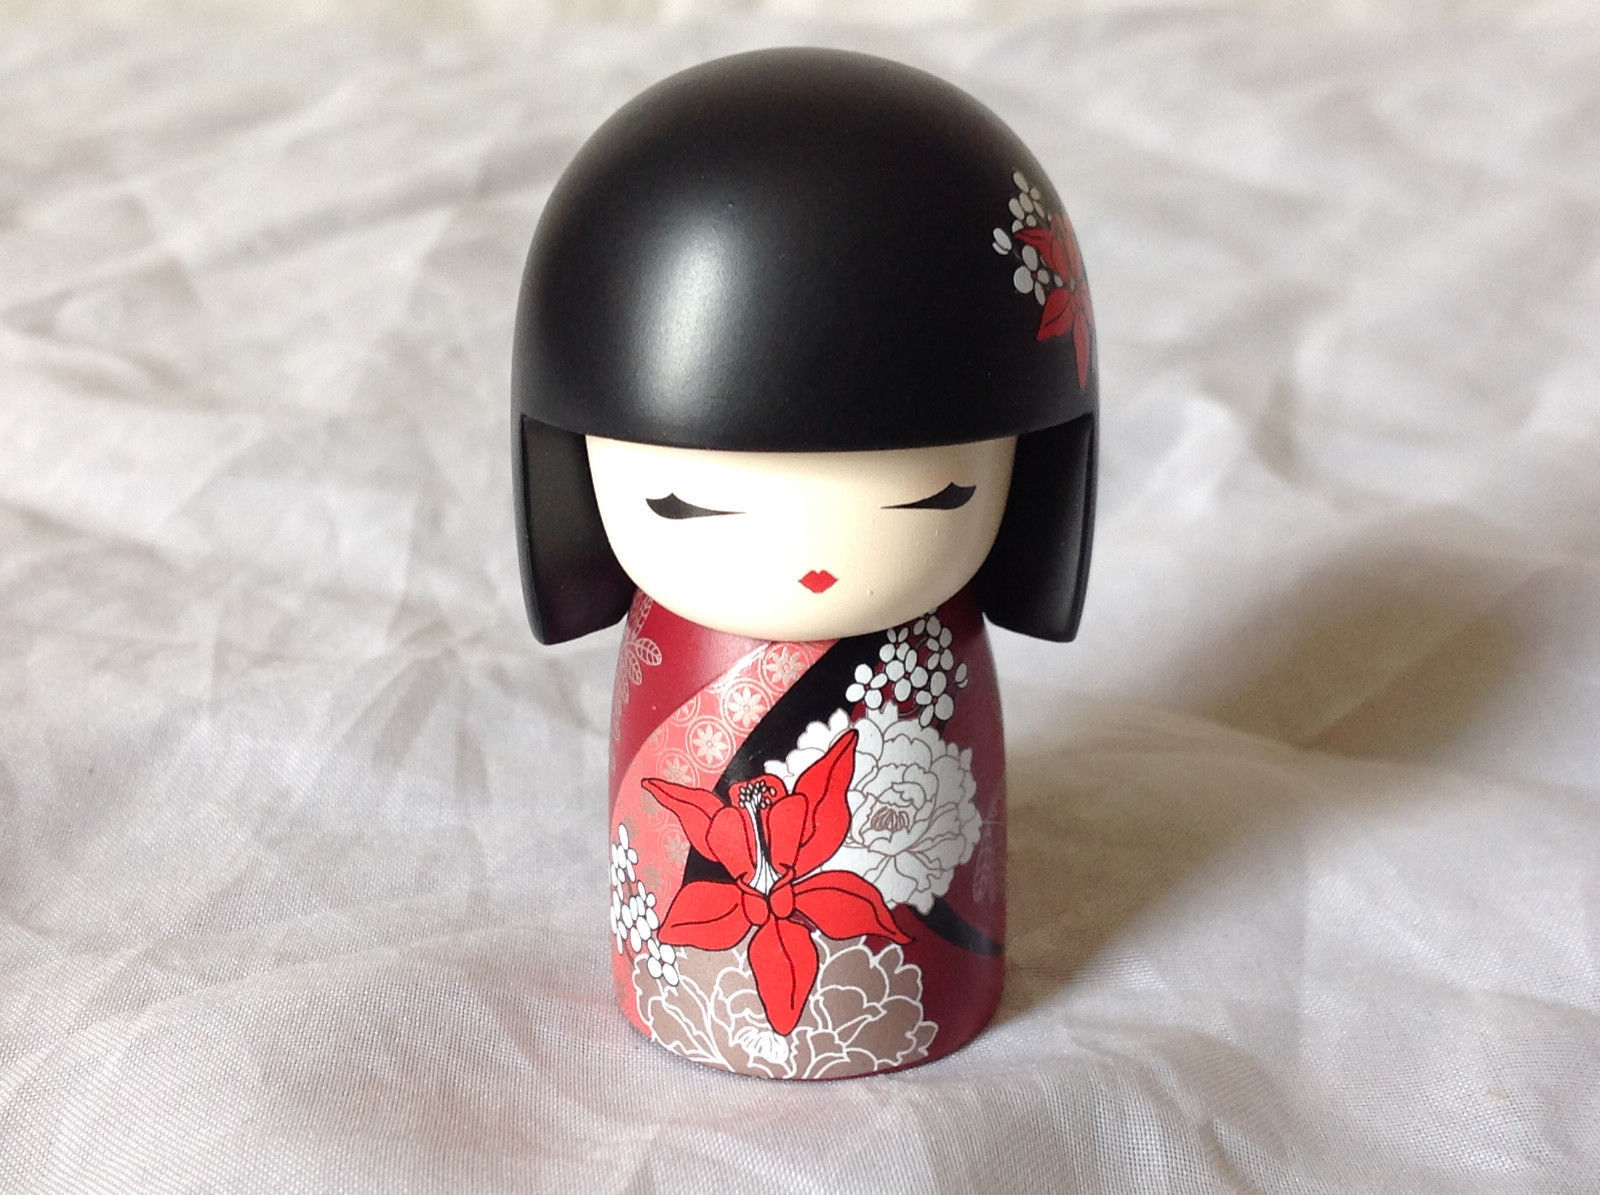 Nabuko Believe Kimmi Mini Doll Black Hair and Red Flowered Dress Asian Style